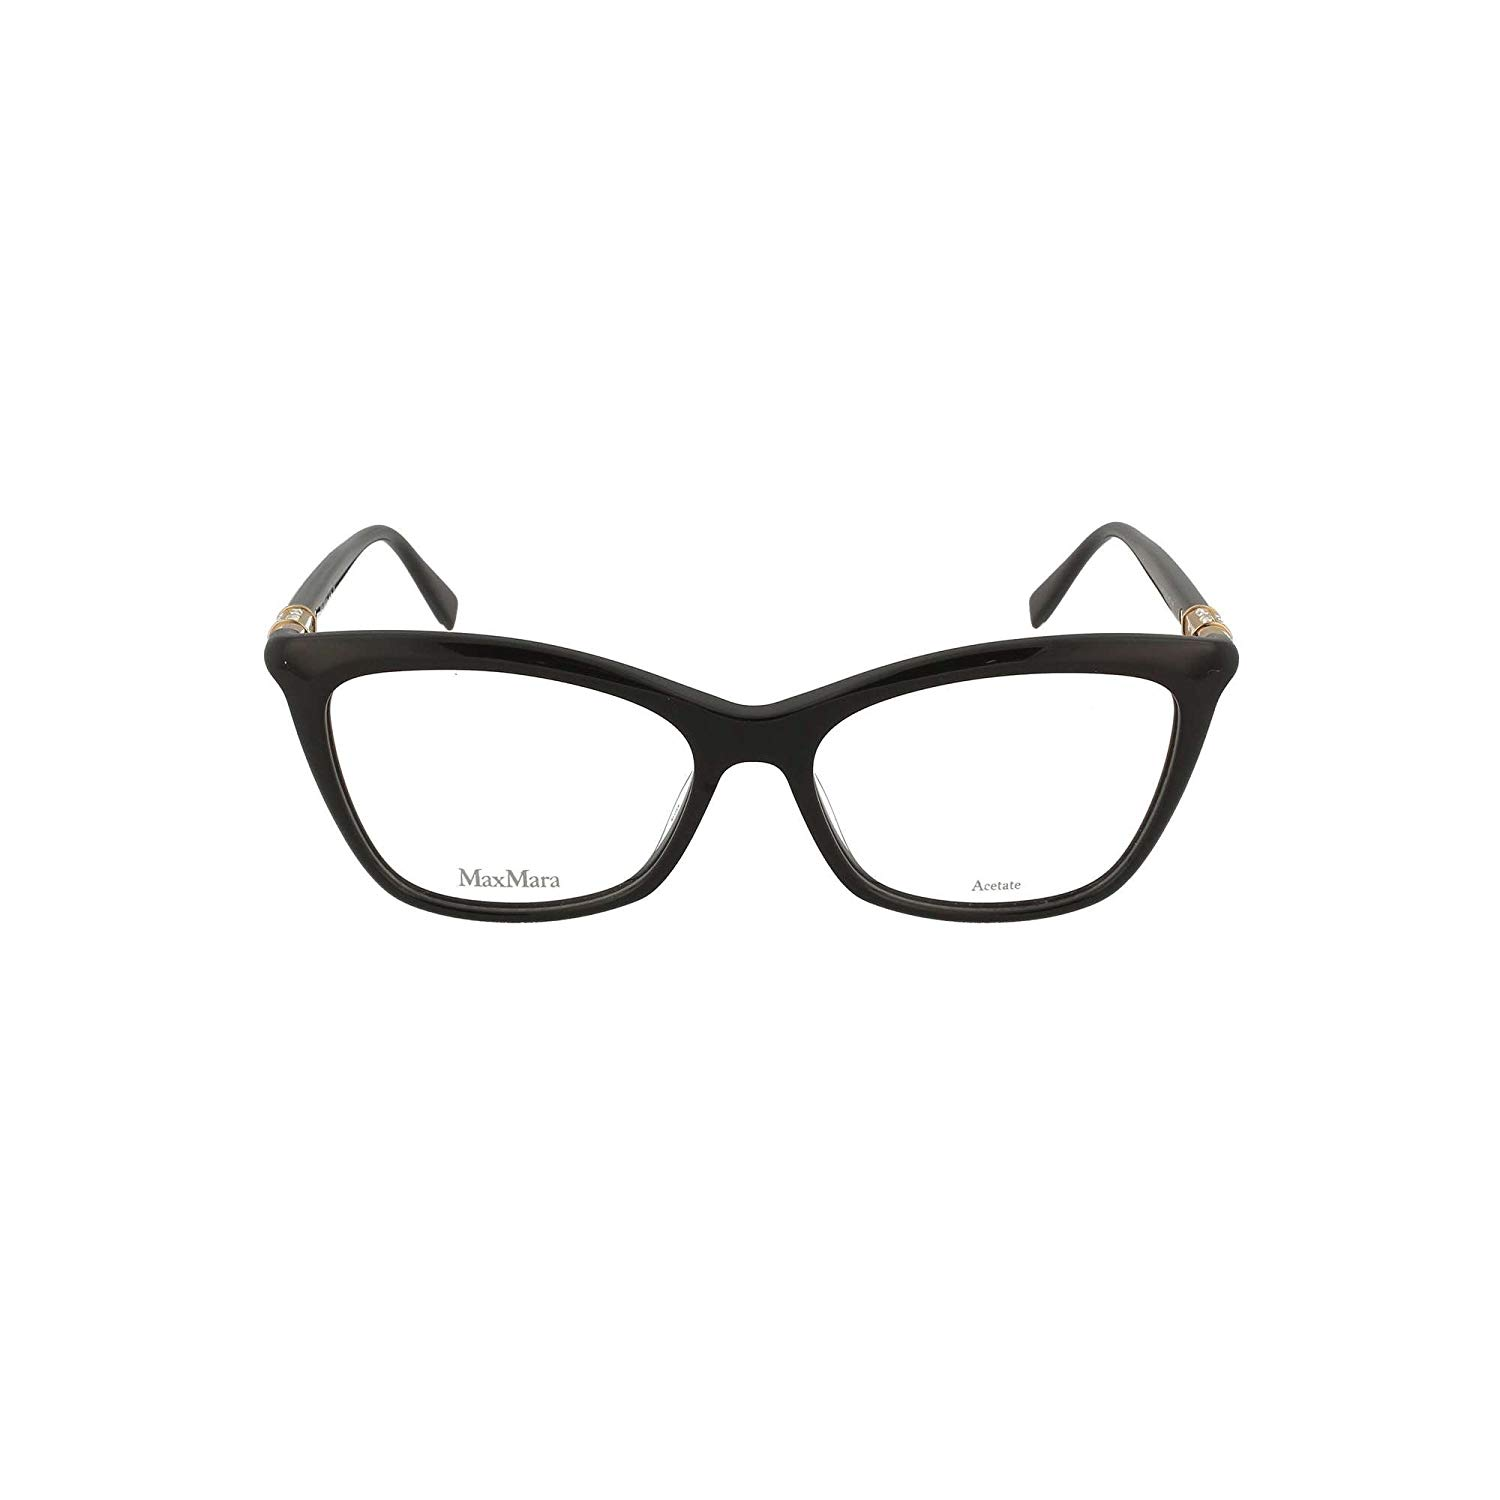 Eyeglasses Max Mara Mm 1339 0807 Black